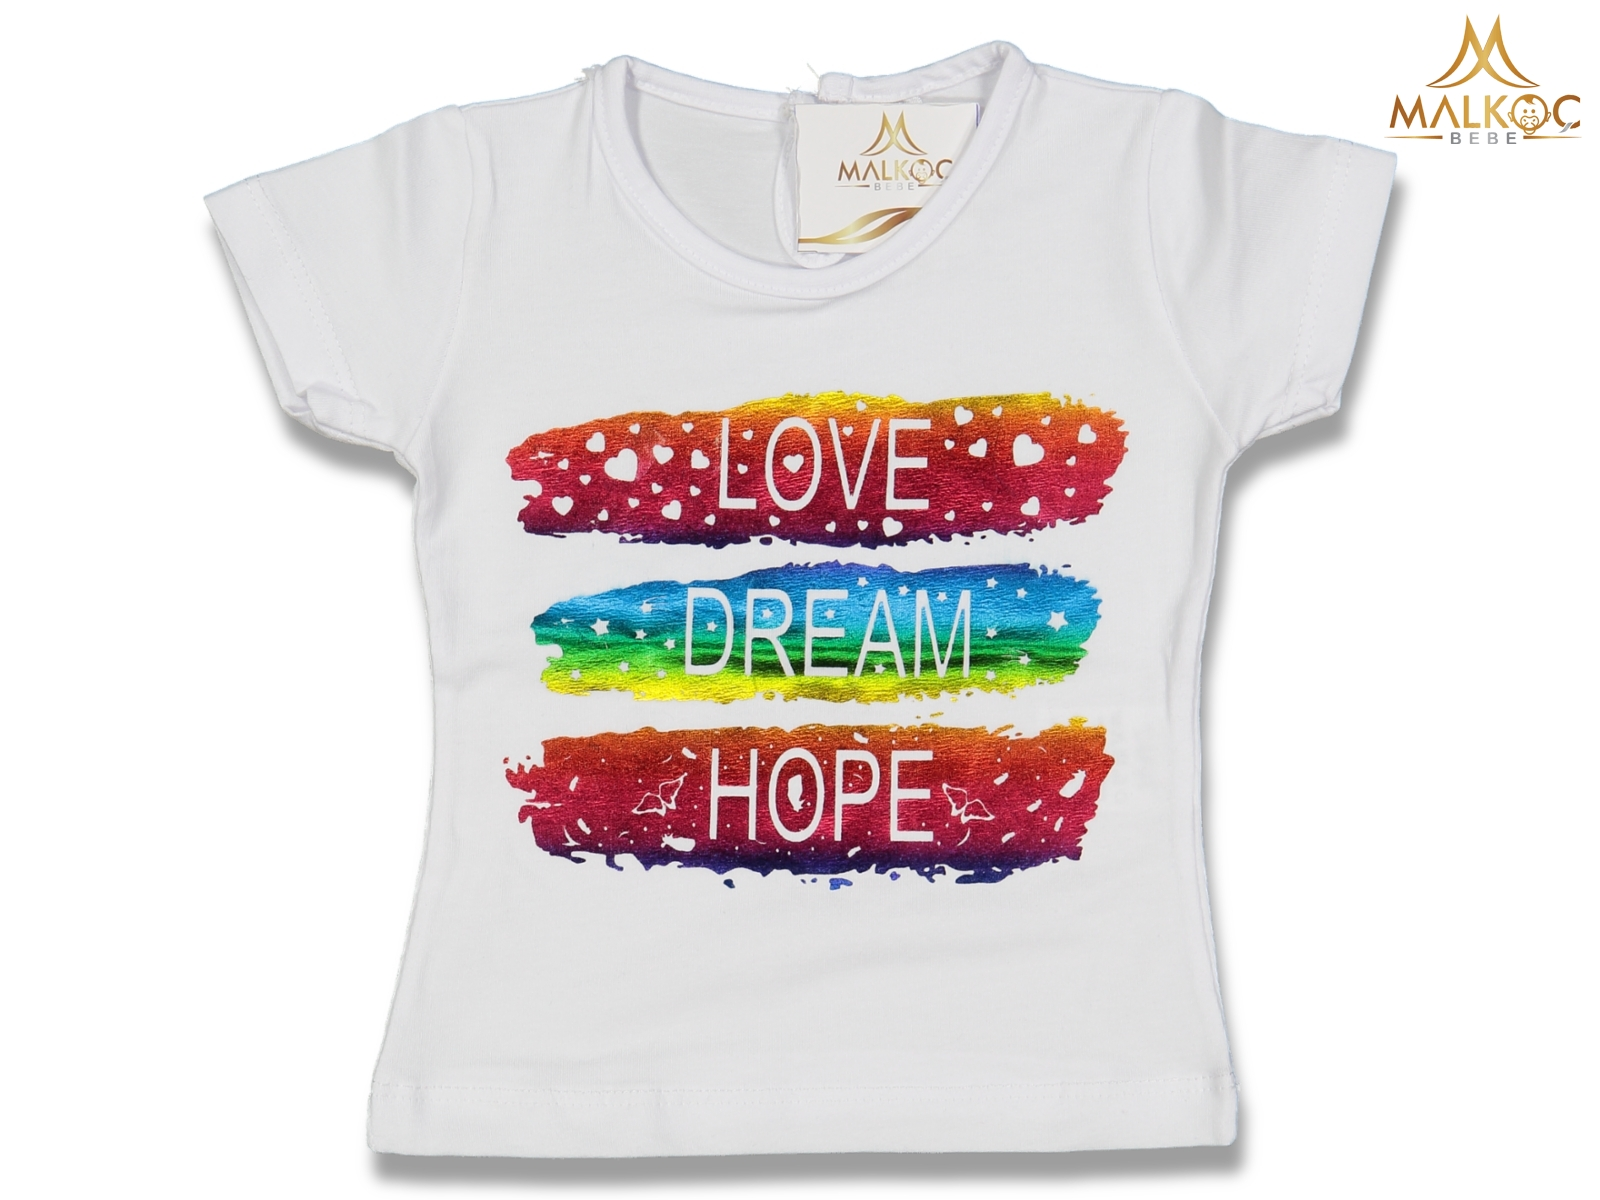 KIZ 6/18 AY LOVE DREAM HOPE BADİ